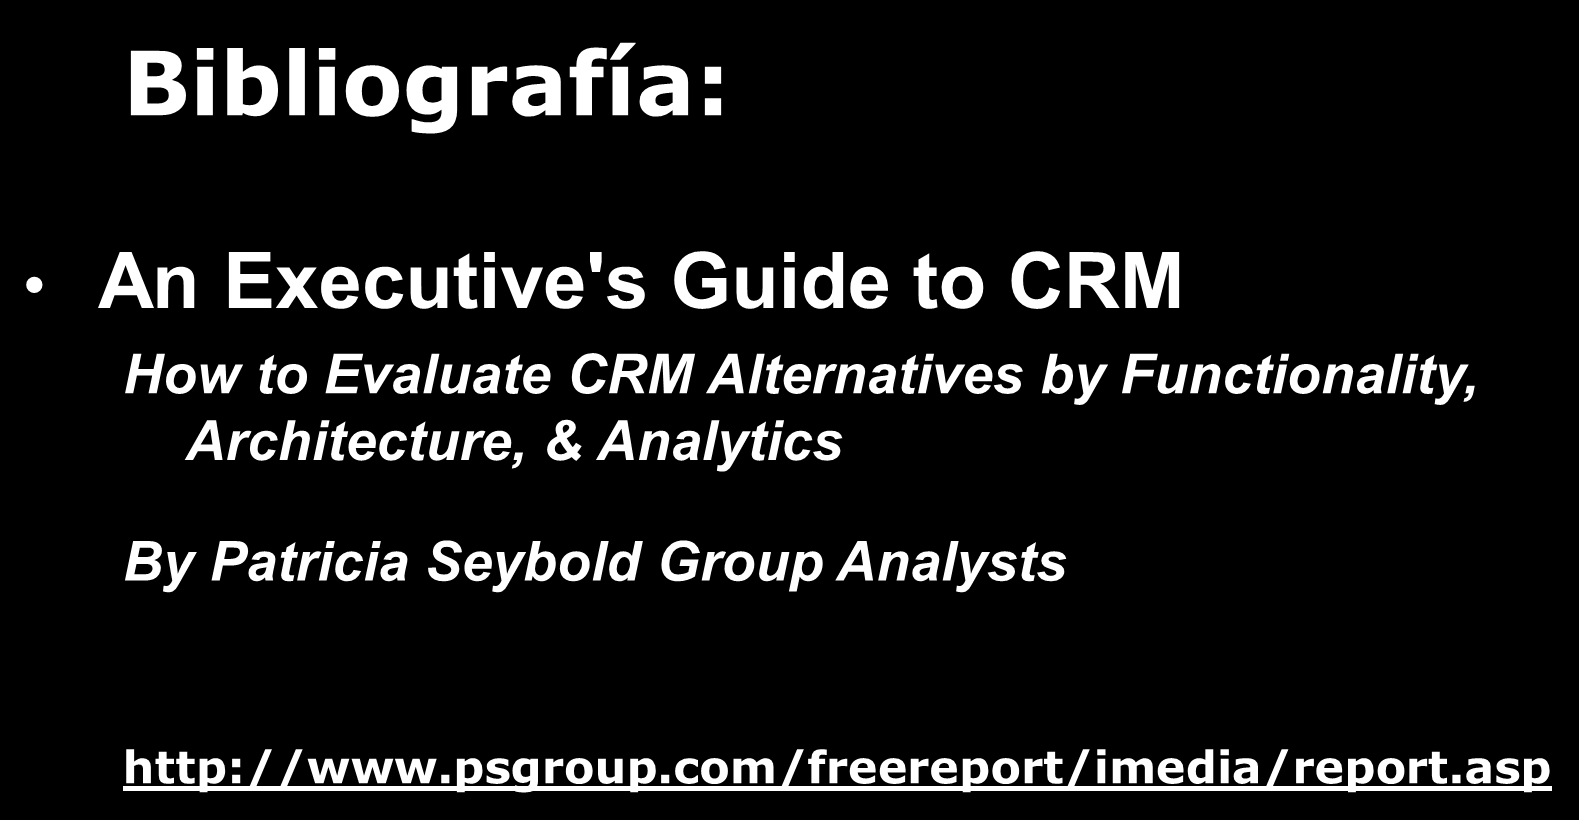 Bibliografía: An Executive's Guide to CRM How to Evaluate CRM Alternatives by Functionality,